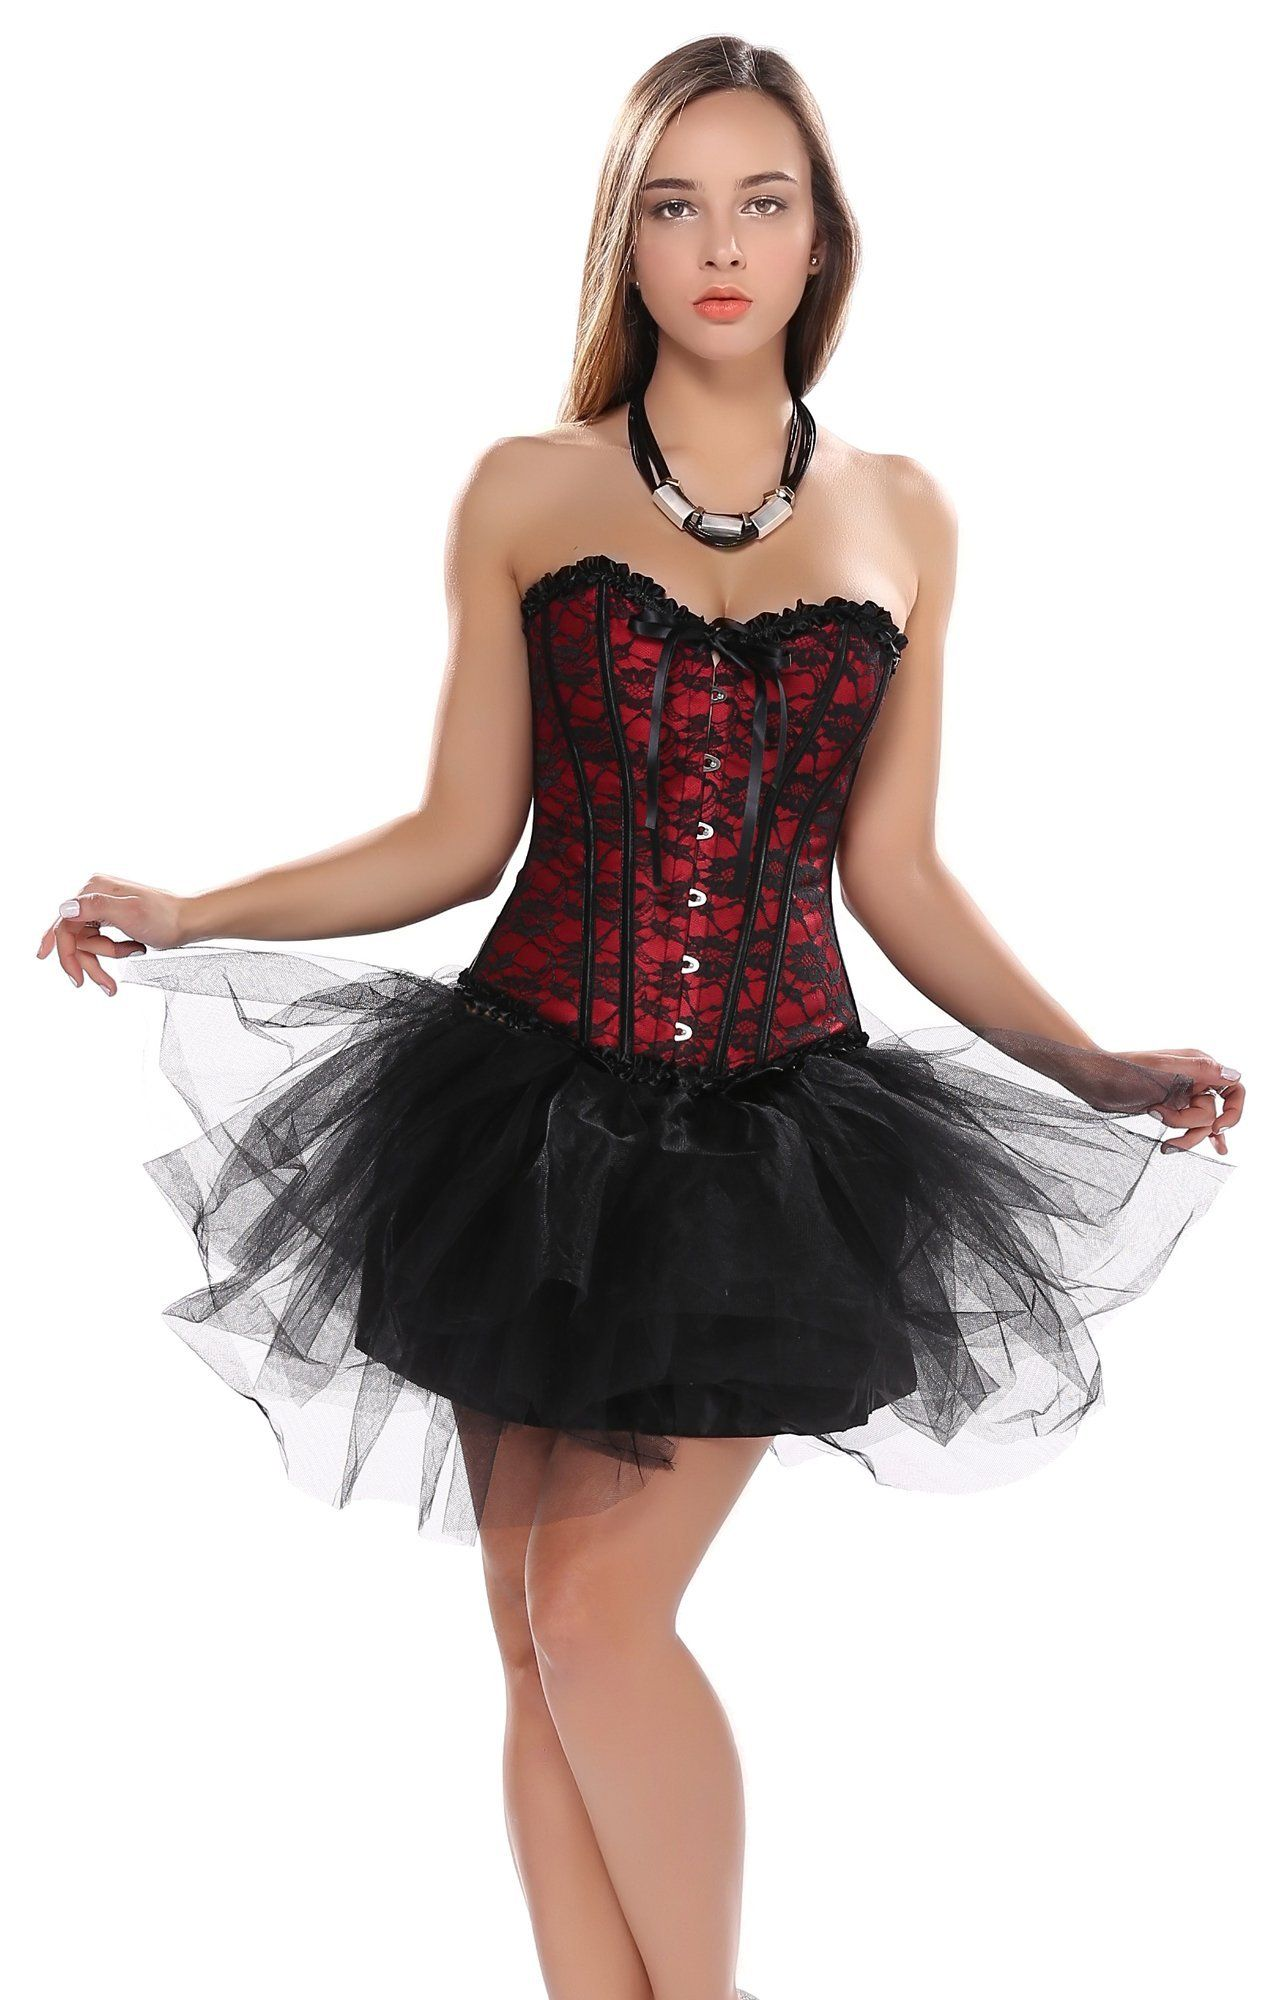 Blidece Women Corset Bustiers Top Plus Size Sexy Lingerie Skirt Tutu Dress Set. Fully adjustable criss cross ribbon laced back. 3 pieces, including 1 top corset,1 skirt, and 1 matched G-string. Corsets are sized by waist size, so please choose your corset according to your waistline, not your bust. Our corsets are perfect for clubbing, intimate or naughty occasions. Jeans, skirt, or any other type of slim-fitting pant will look great with a corset. Blidece is registered trademark and is...